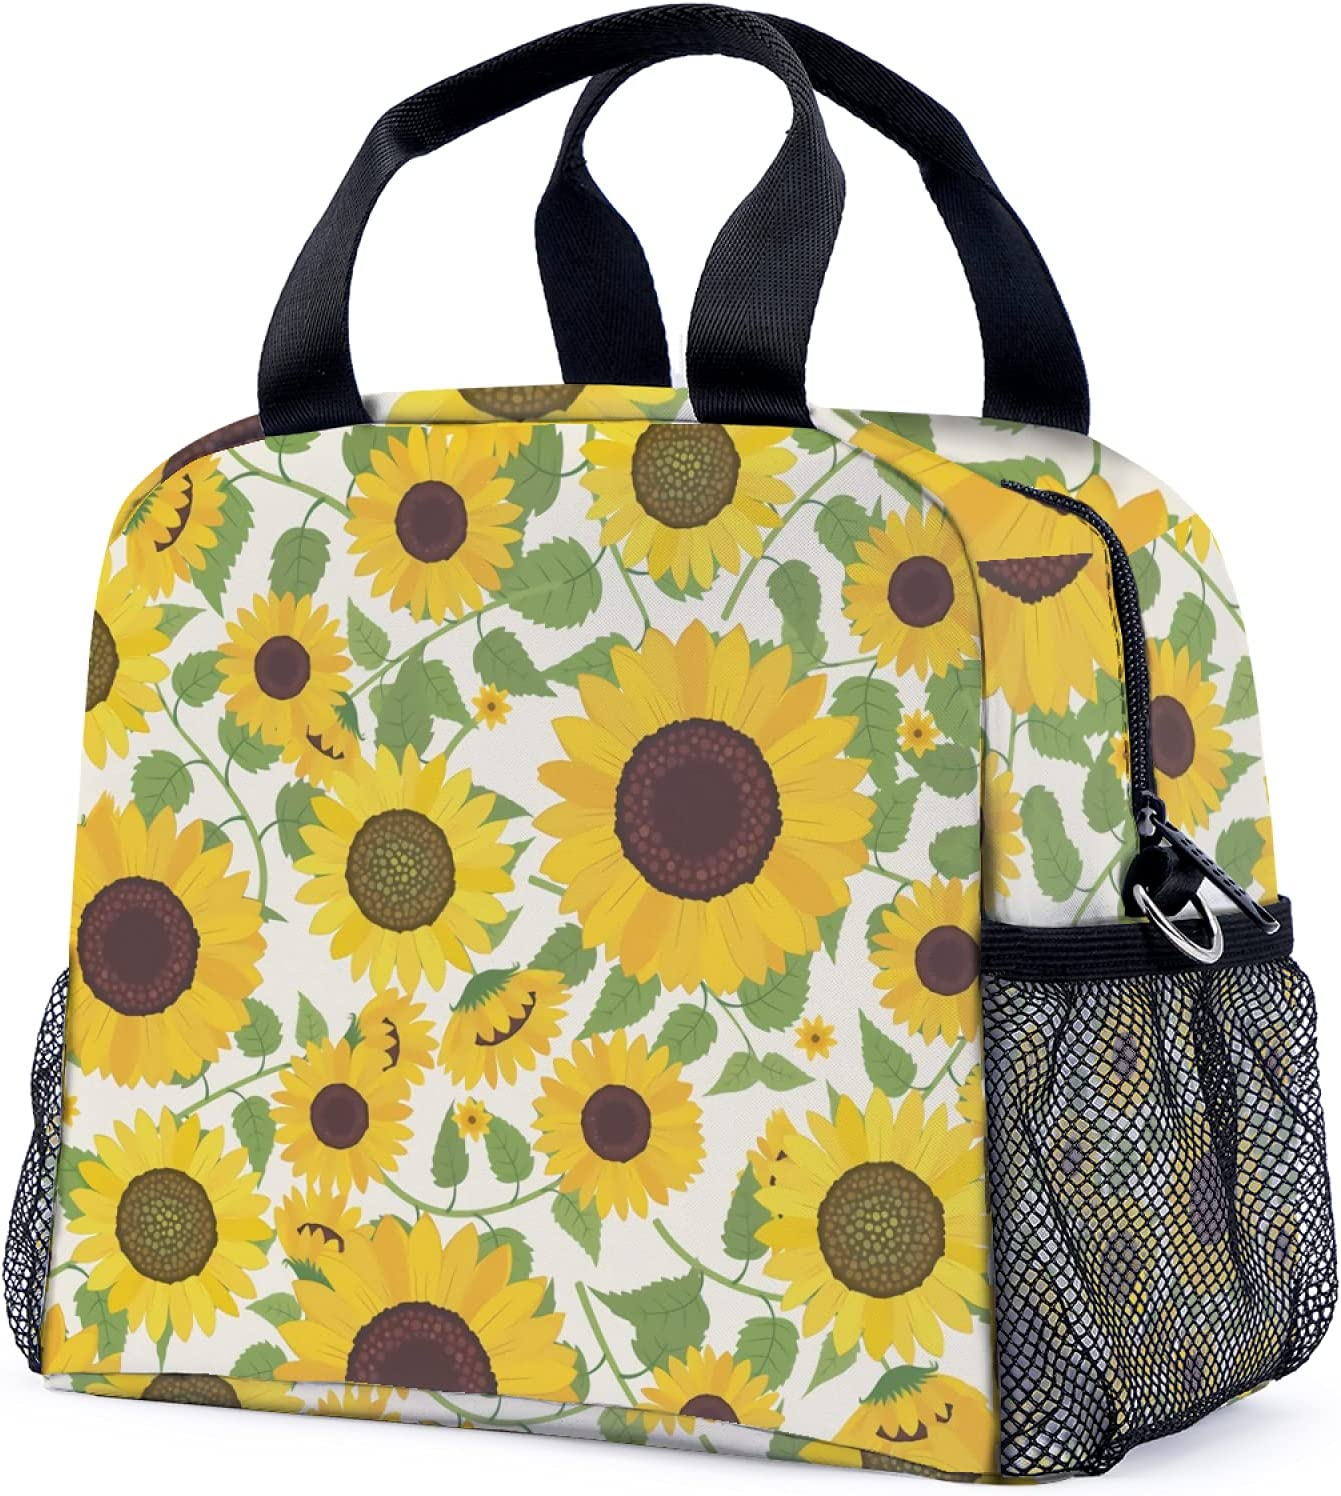 Sunflower Lunch Bag Unisex Insulated Cooler Lunch Tote Bag for Women/Girls/Boys.